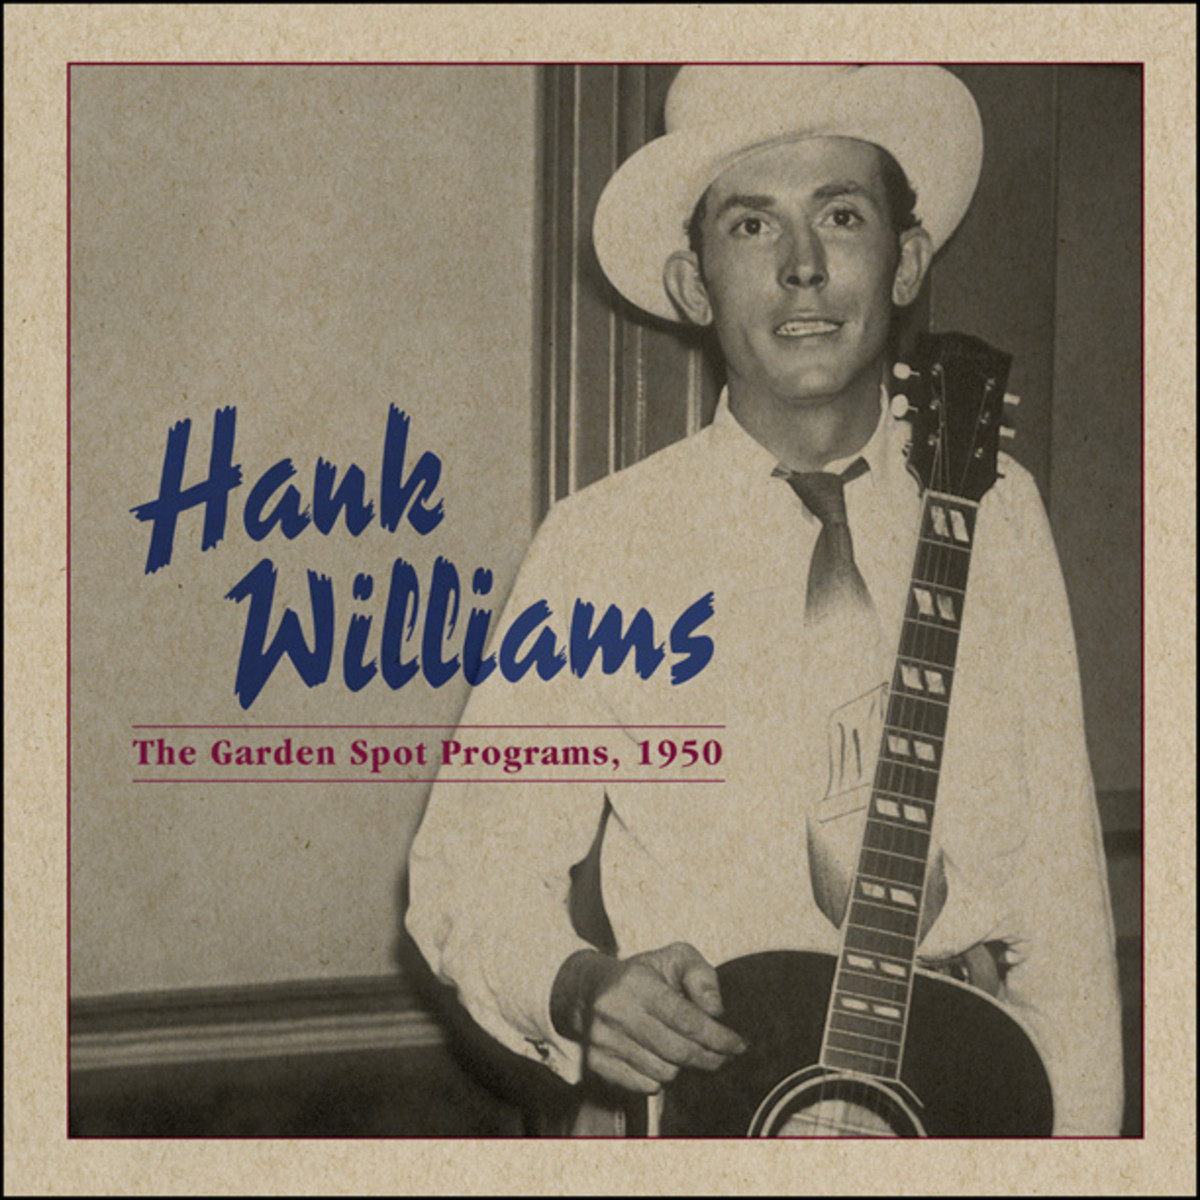 Hank Williams Garden Spot Programs